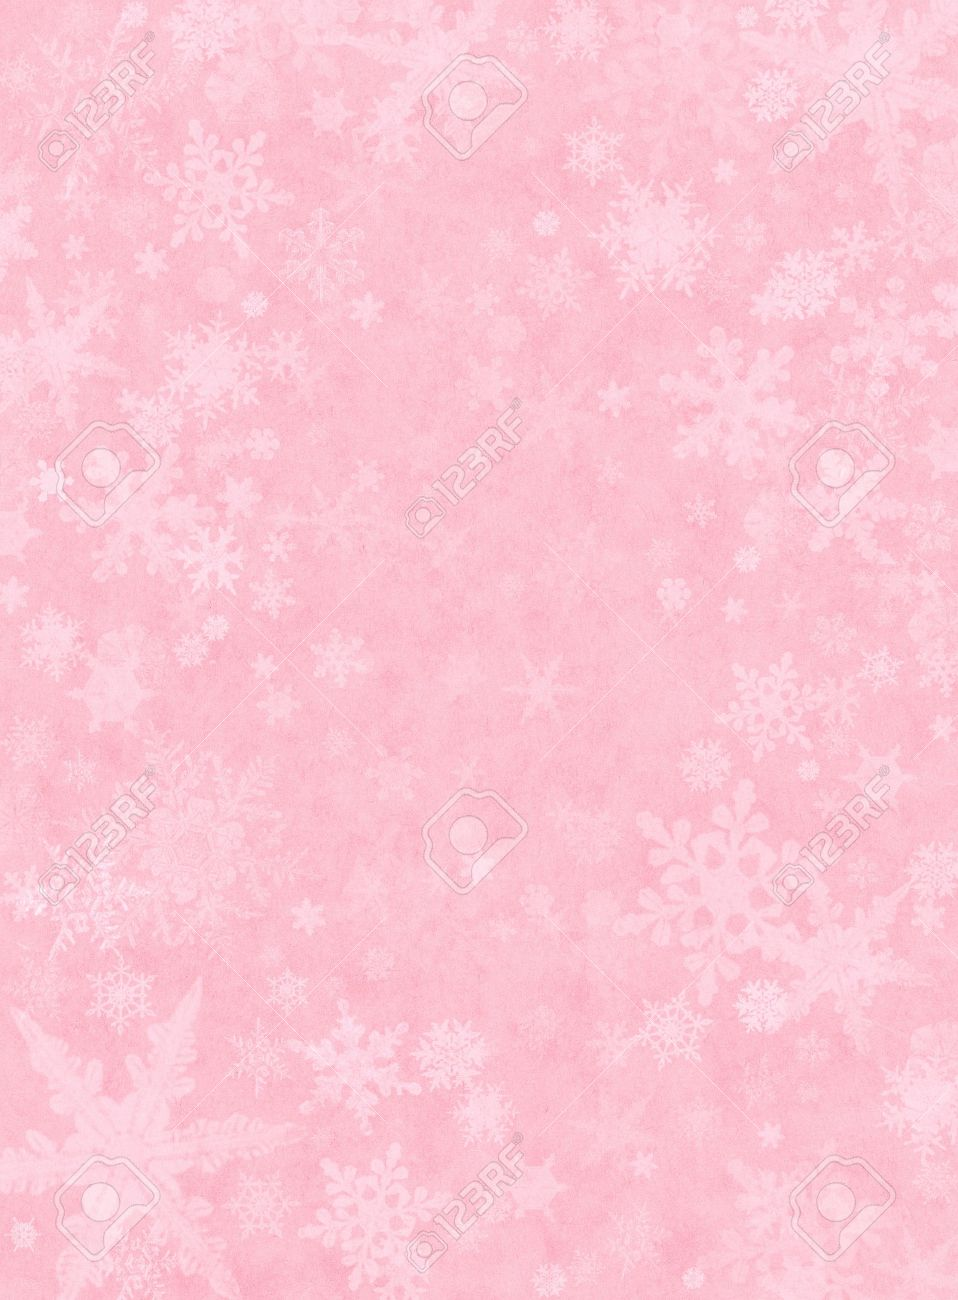 snowflakes on a light pink paper background stock photo picture